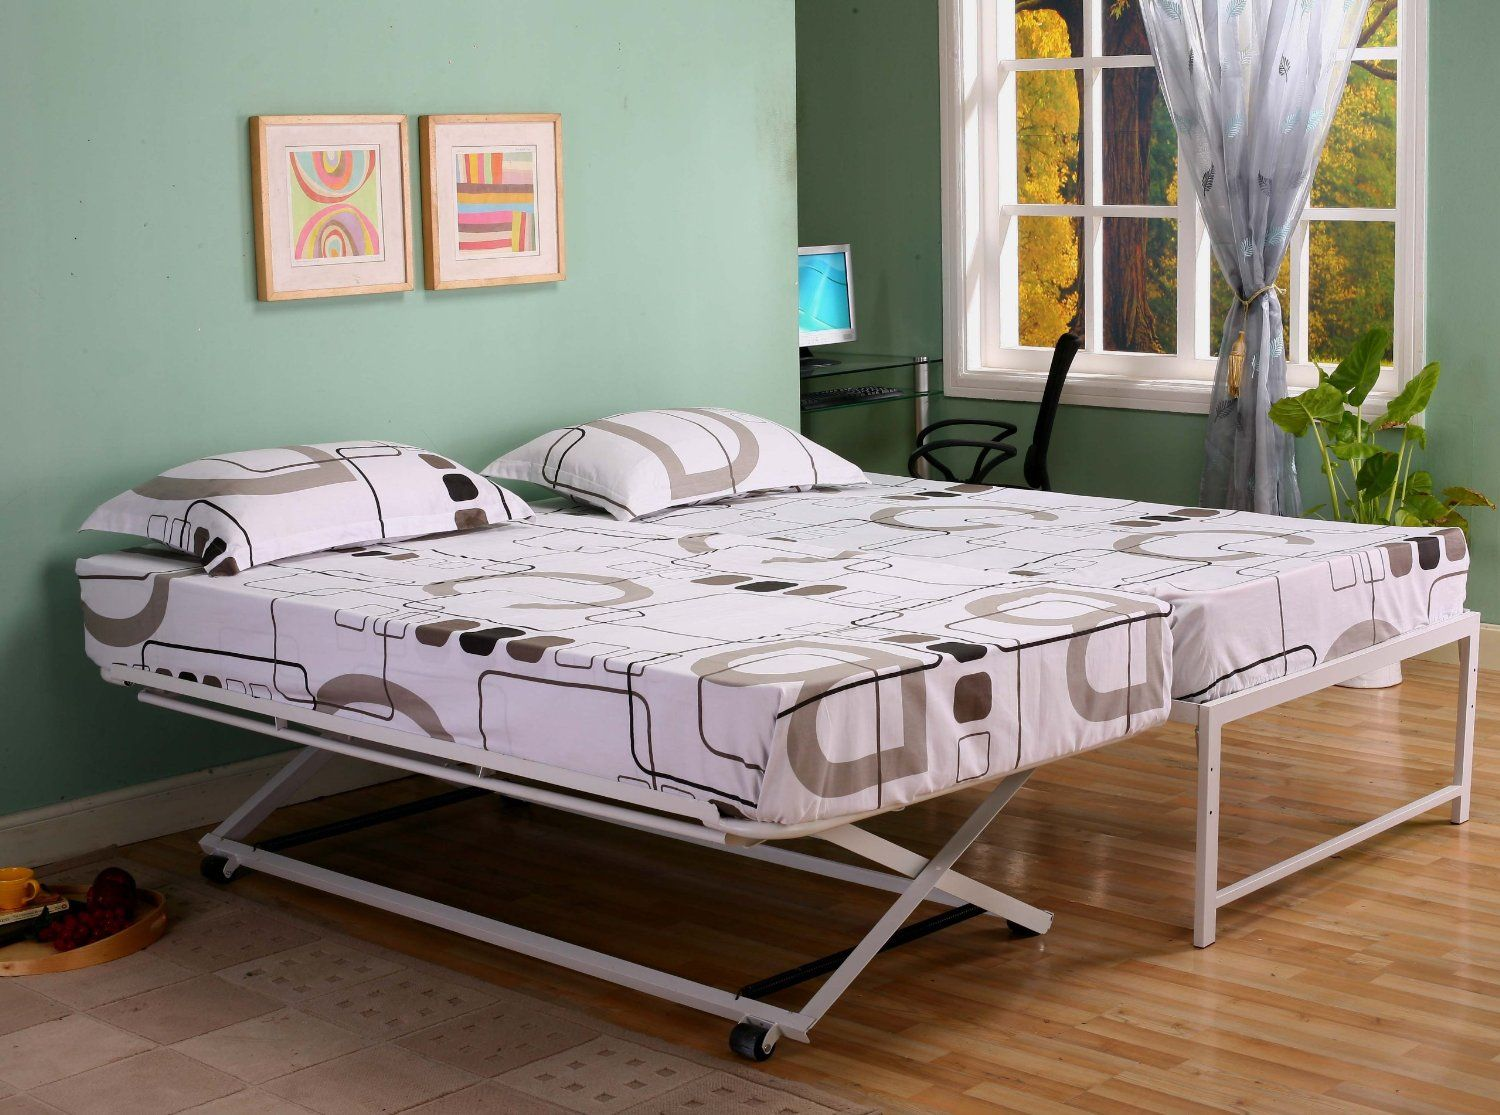 Amazon.com: Twin Size Steel Day Bed (Daybed) Frame with Pop Up ...